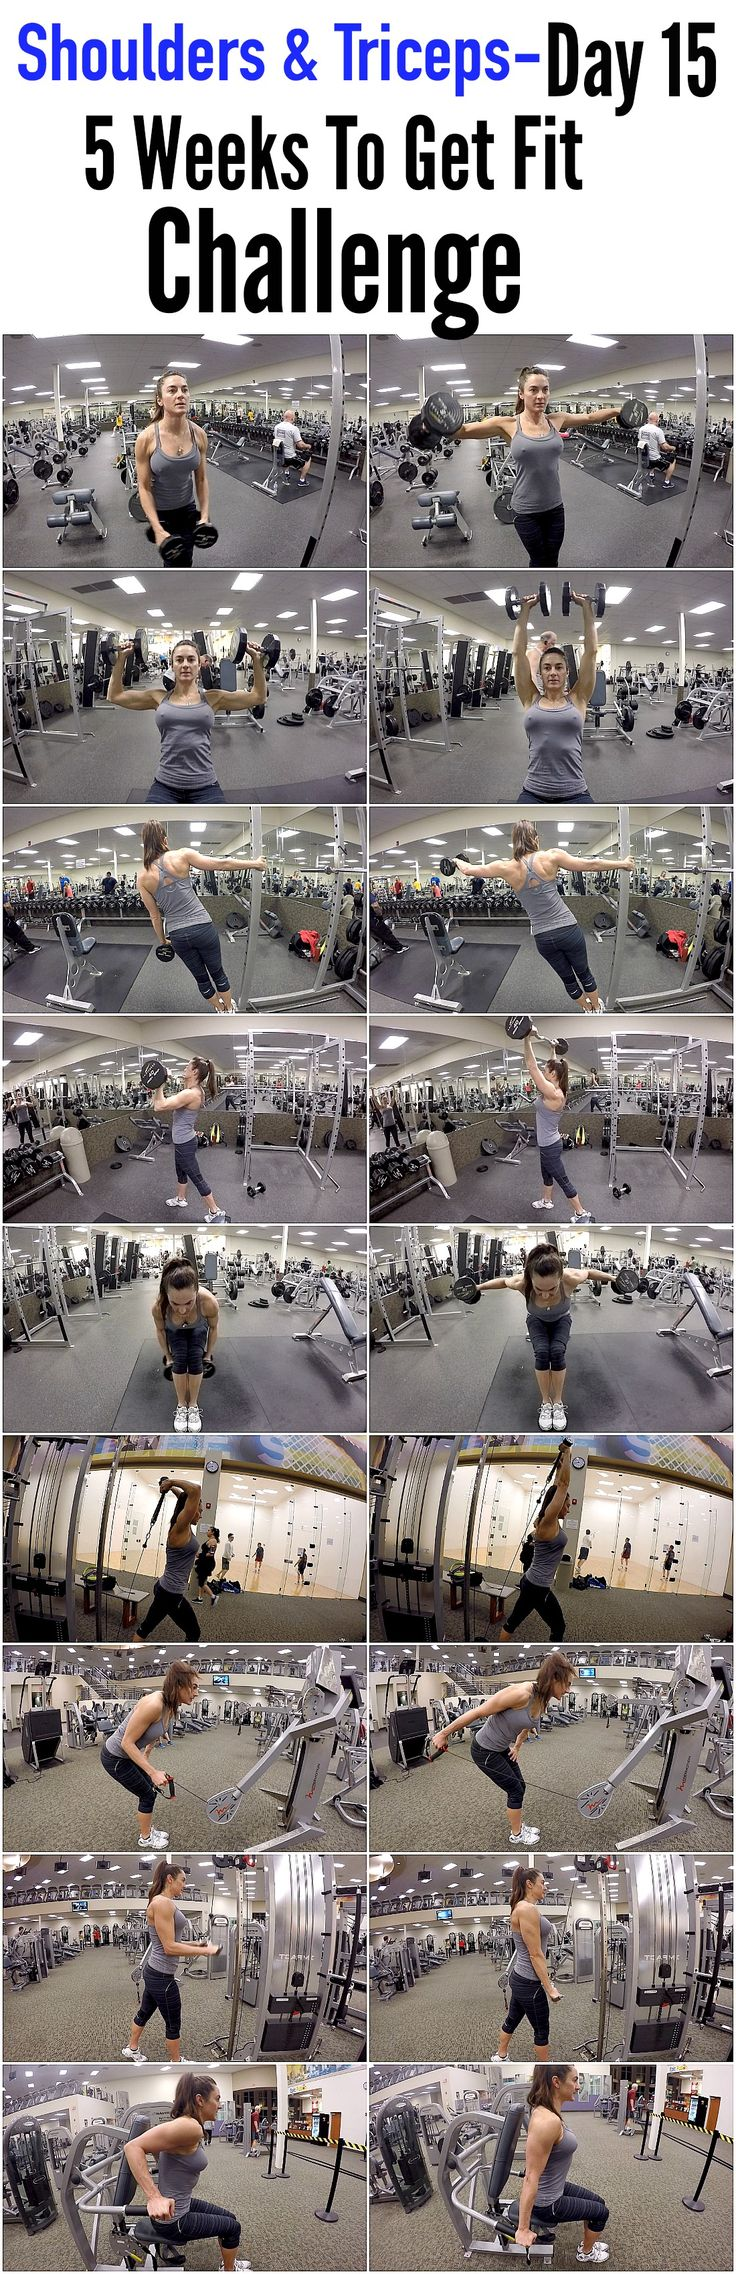 5 Weeks To Get Fit Challenge Day 15-Shoulders & Triceps.